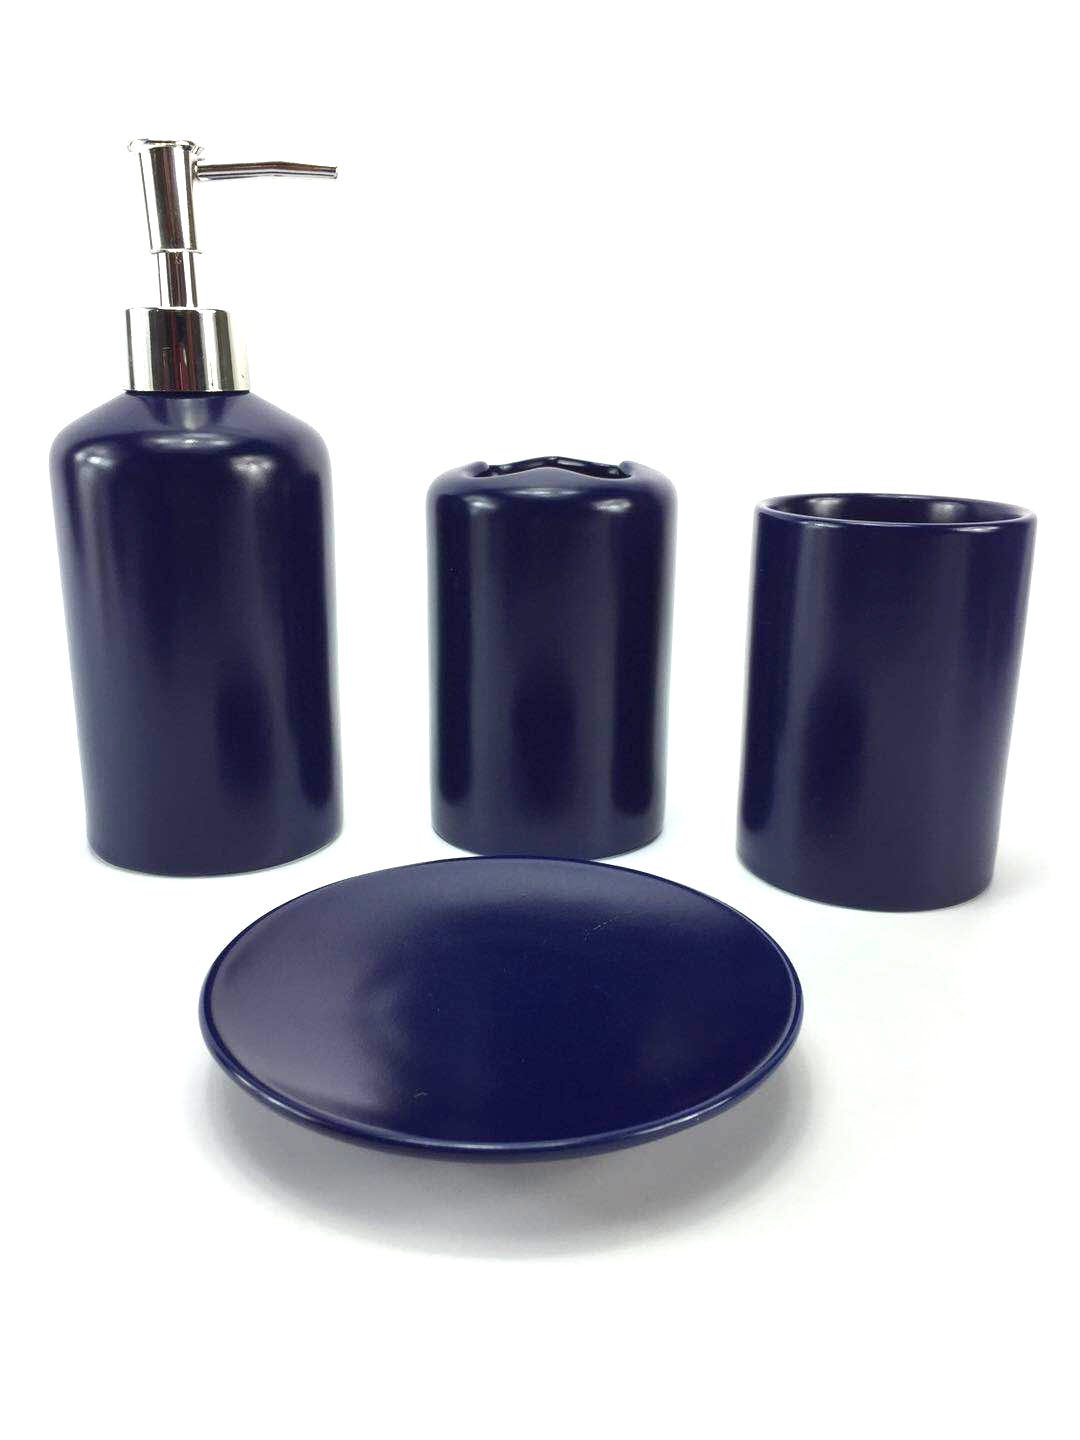 WPM 4 Piece Ceramic Bath Accessory Set | Includes Bathroom Designer Soap or Lotion Dispenser w/Toothbrush Holder, Tumbler, Soap Dish Choose from Purple, Black, Brown, Navy or Burgundy (Navy)